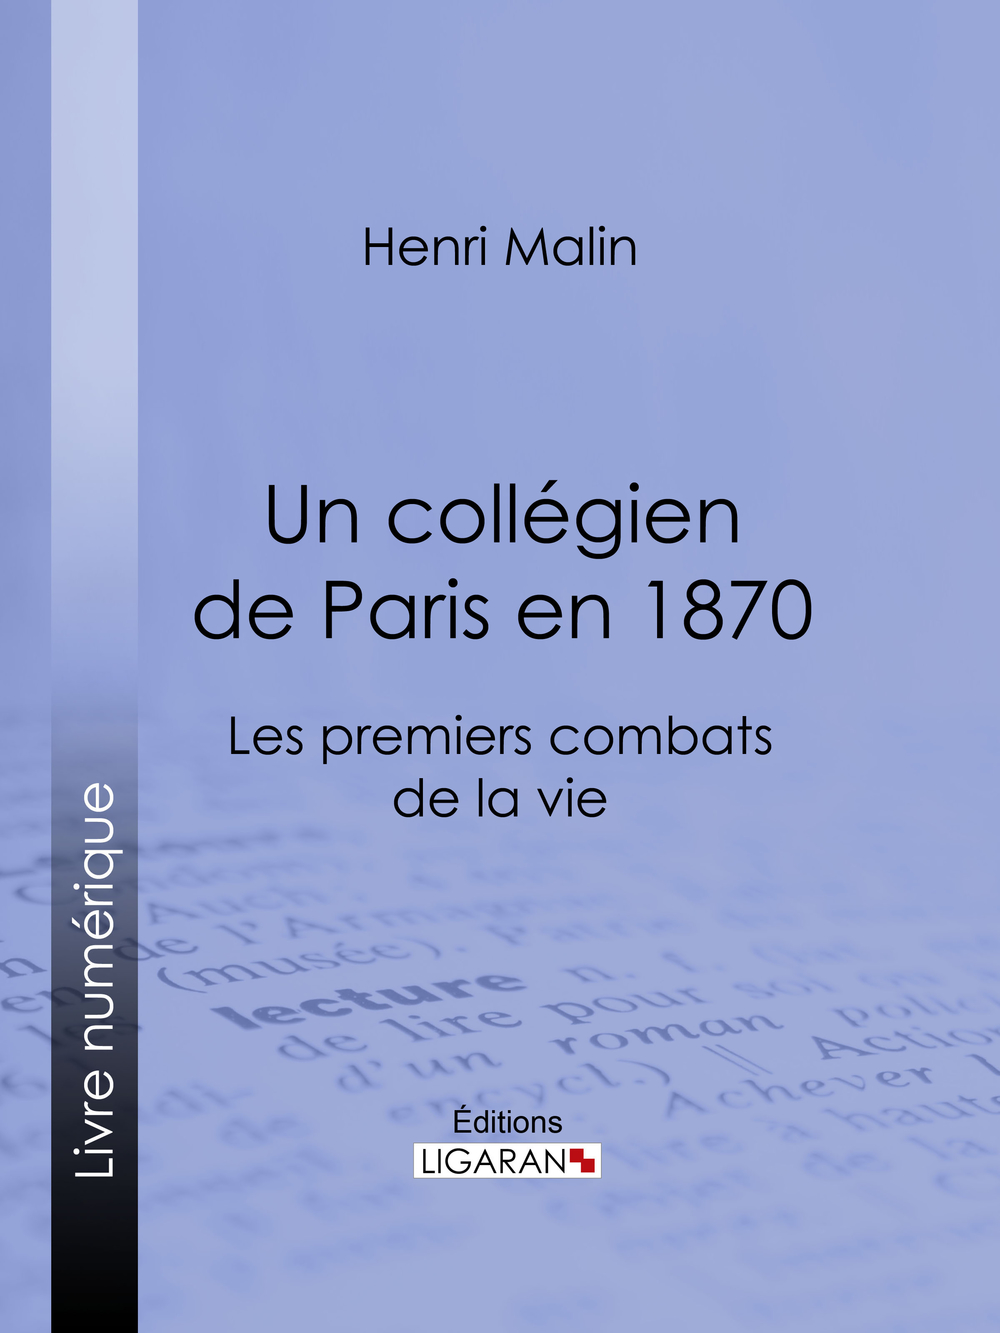 Un collégien de Paris en 1870